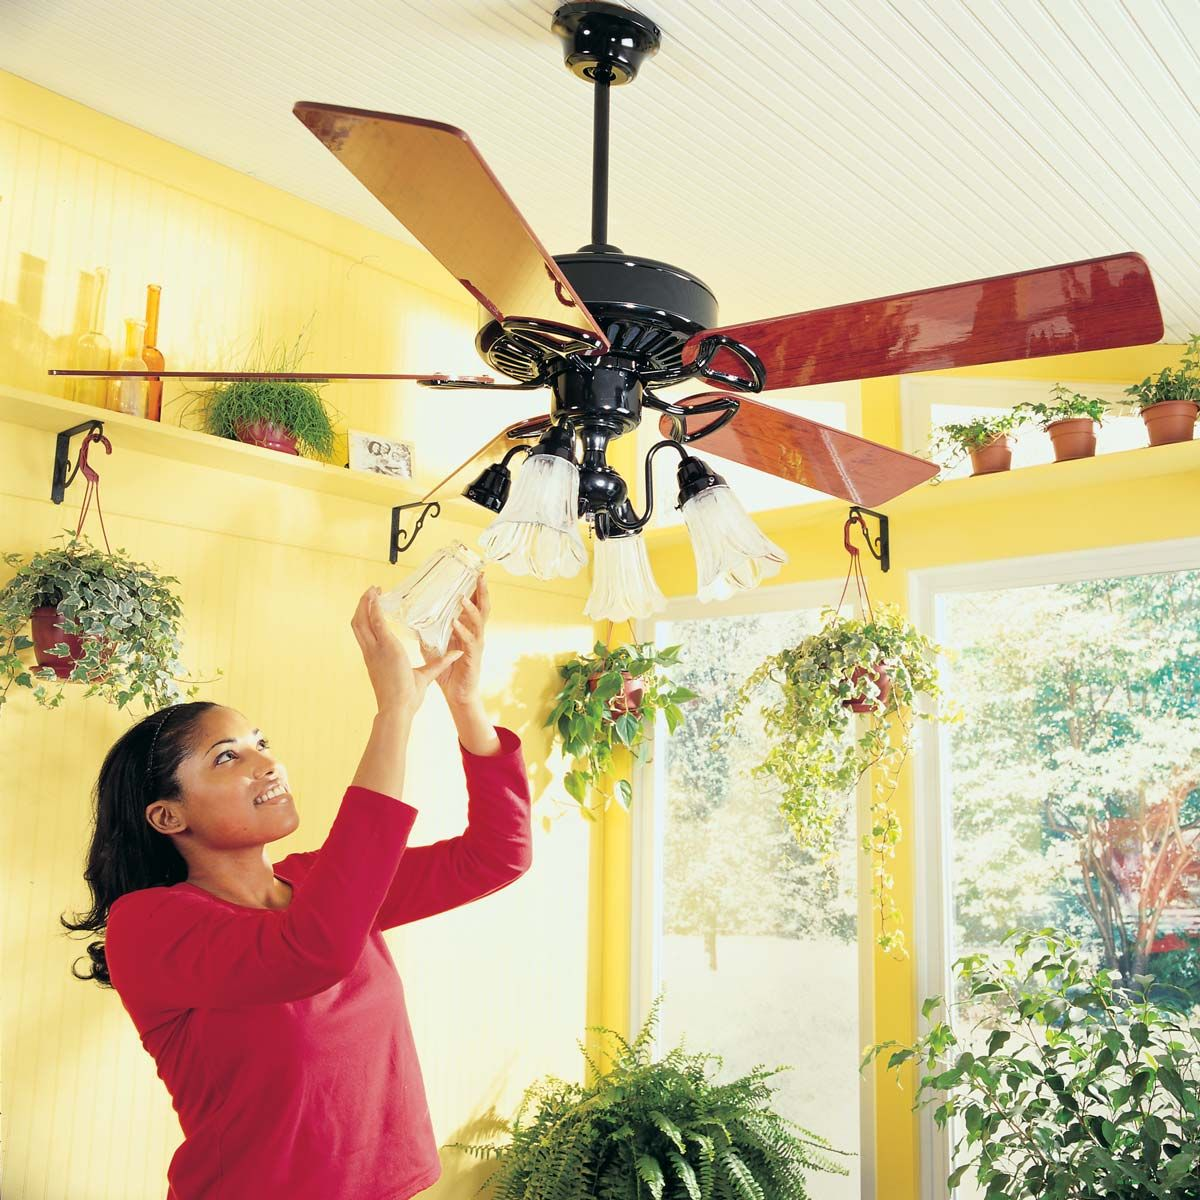 Switch Your Ceiling Fan Direction Ceiling Fans Should Turn Clockwise In The Colder Months Which Pushes Warm Air Bac Homeowner Ceiling Fan Ceiling Fan Wiring